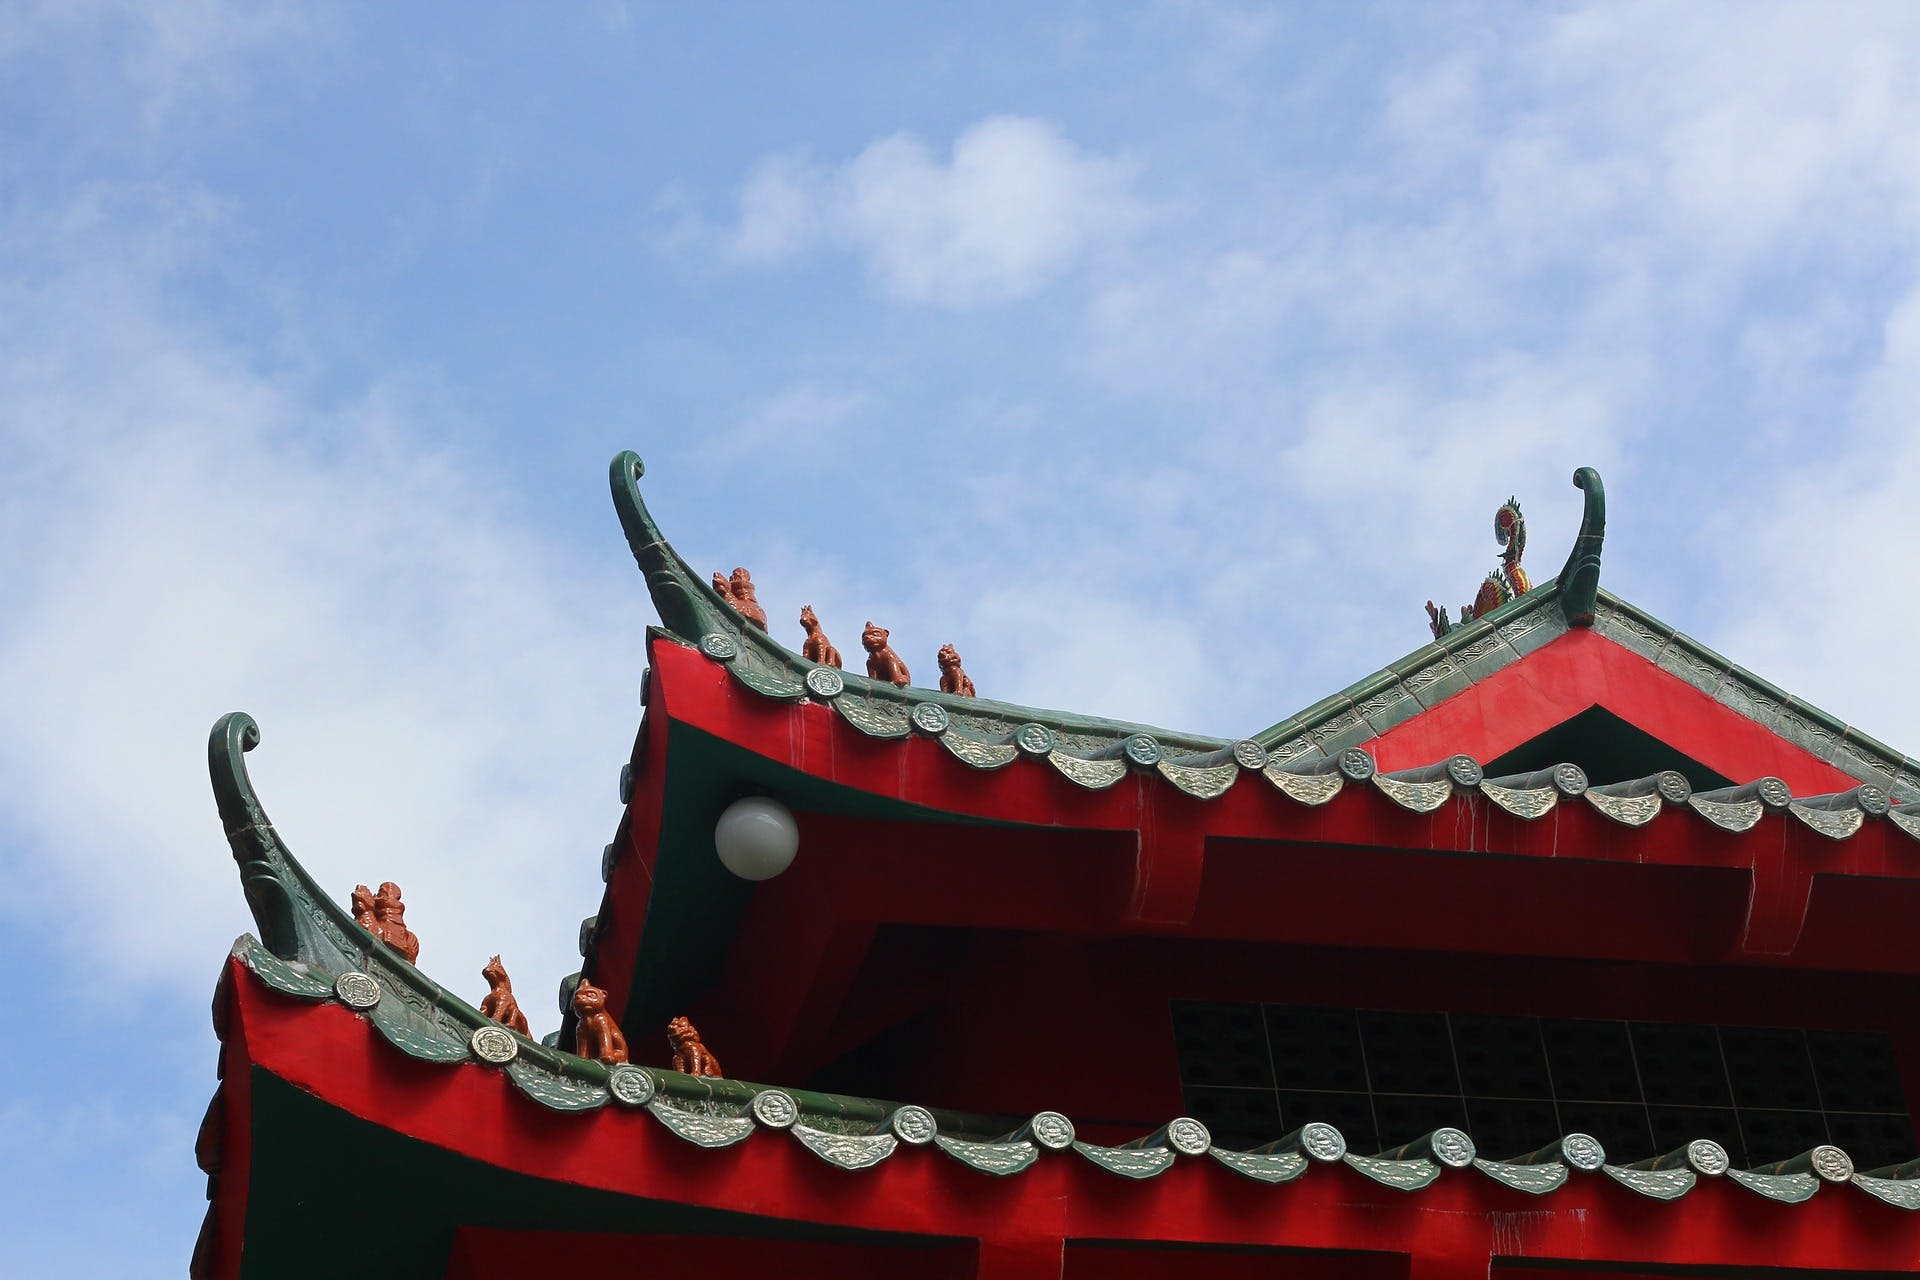 Thian Hock Keng Temple, a national monument of Singapore